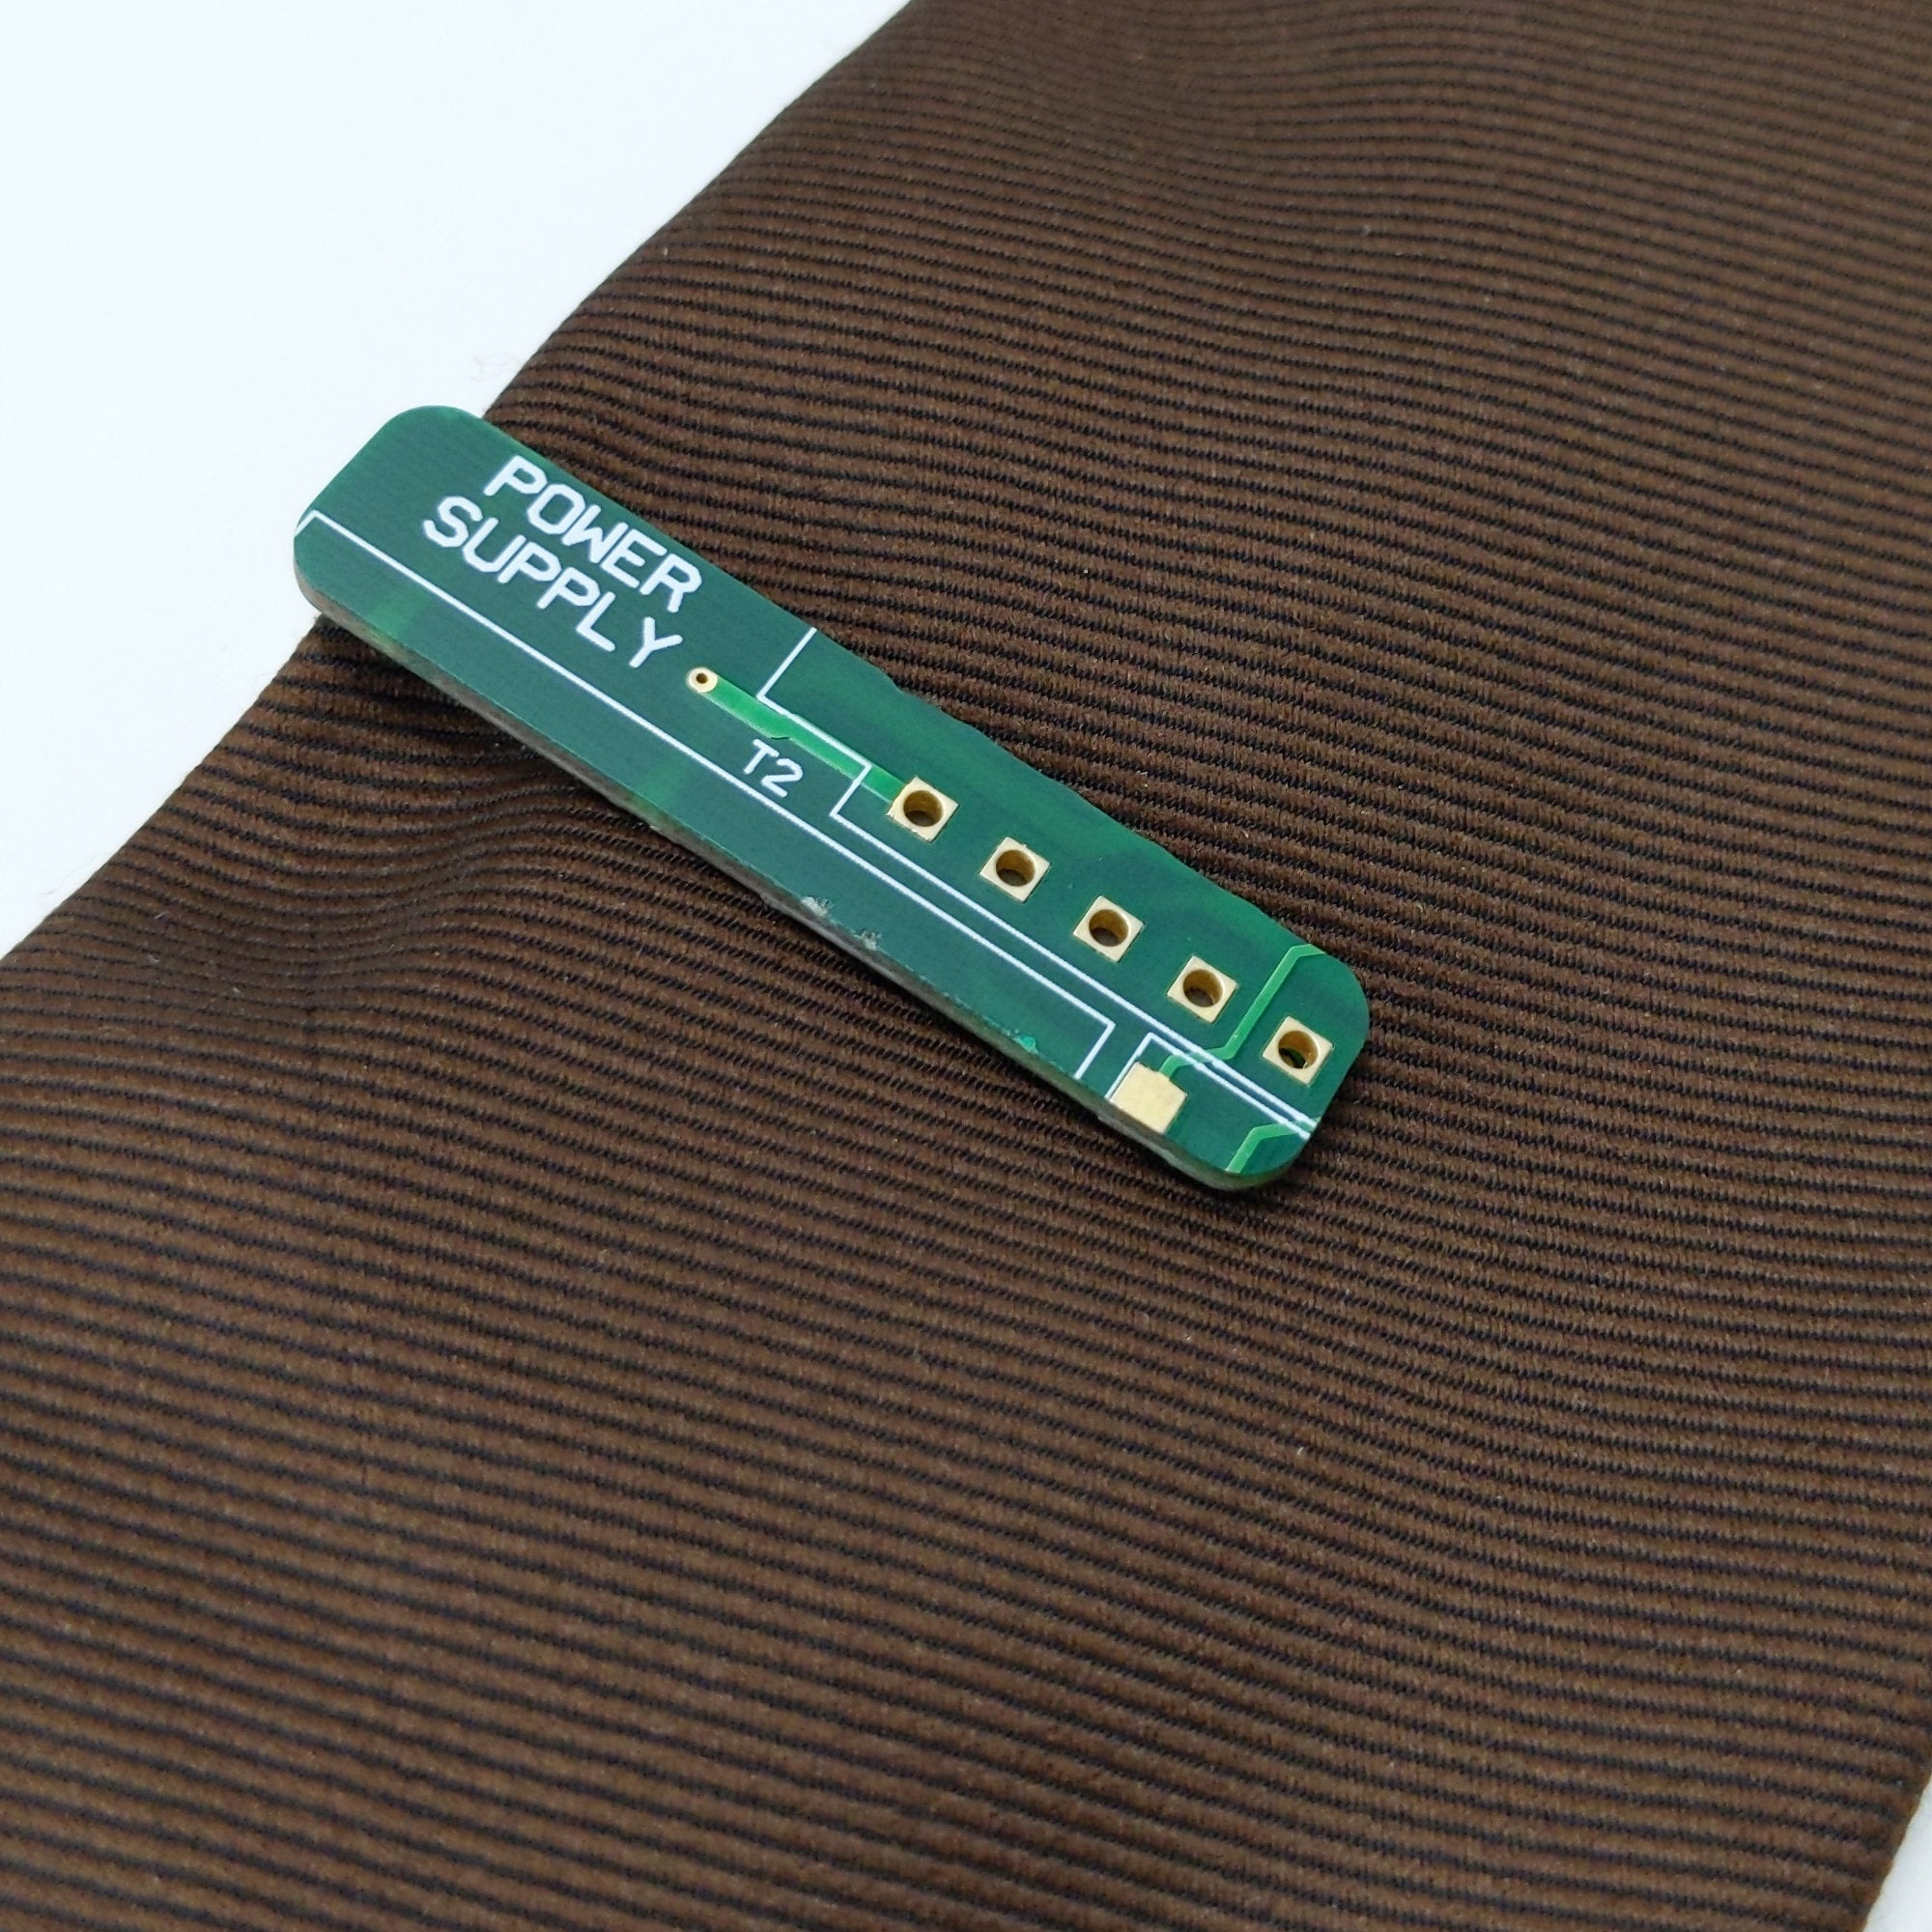 Circuit Board Power Supply Tie Clip - TechWears Ltd